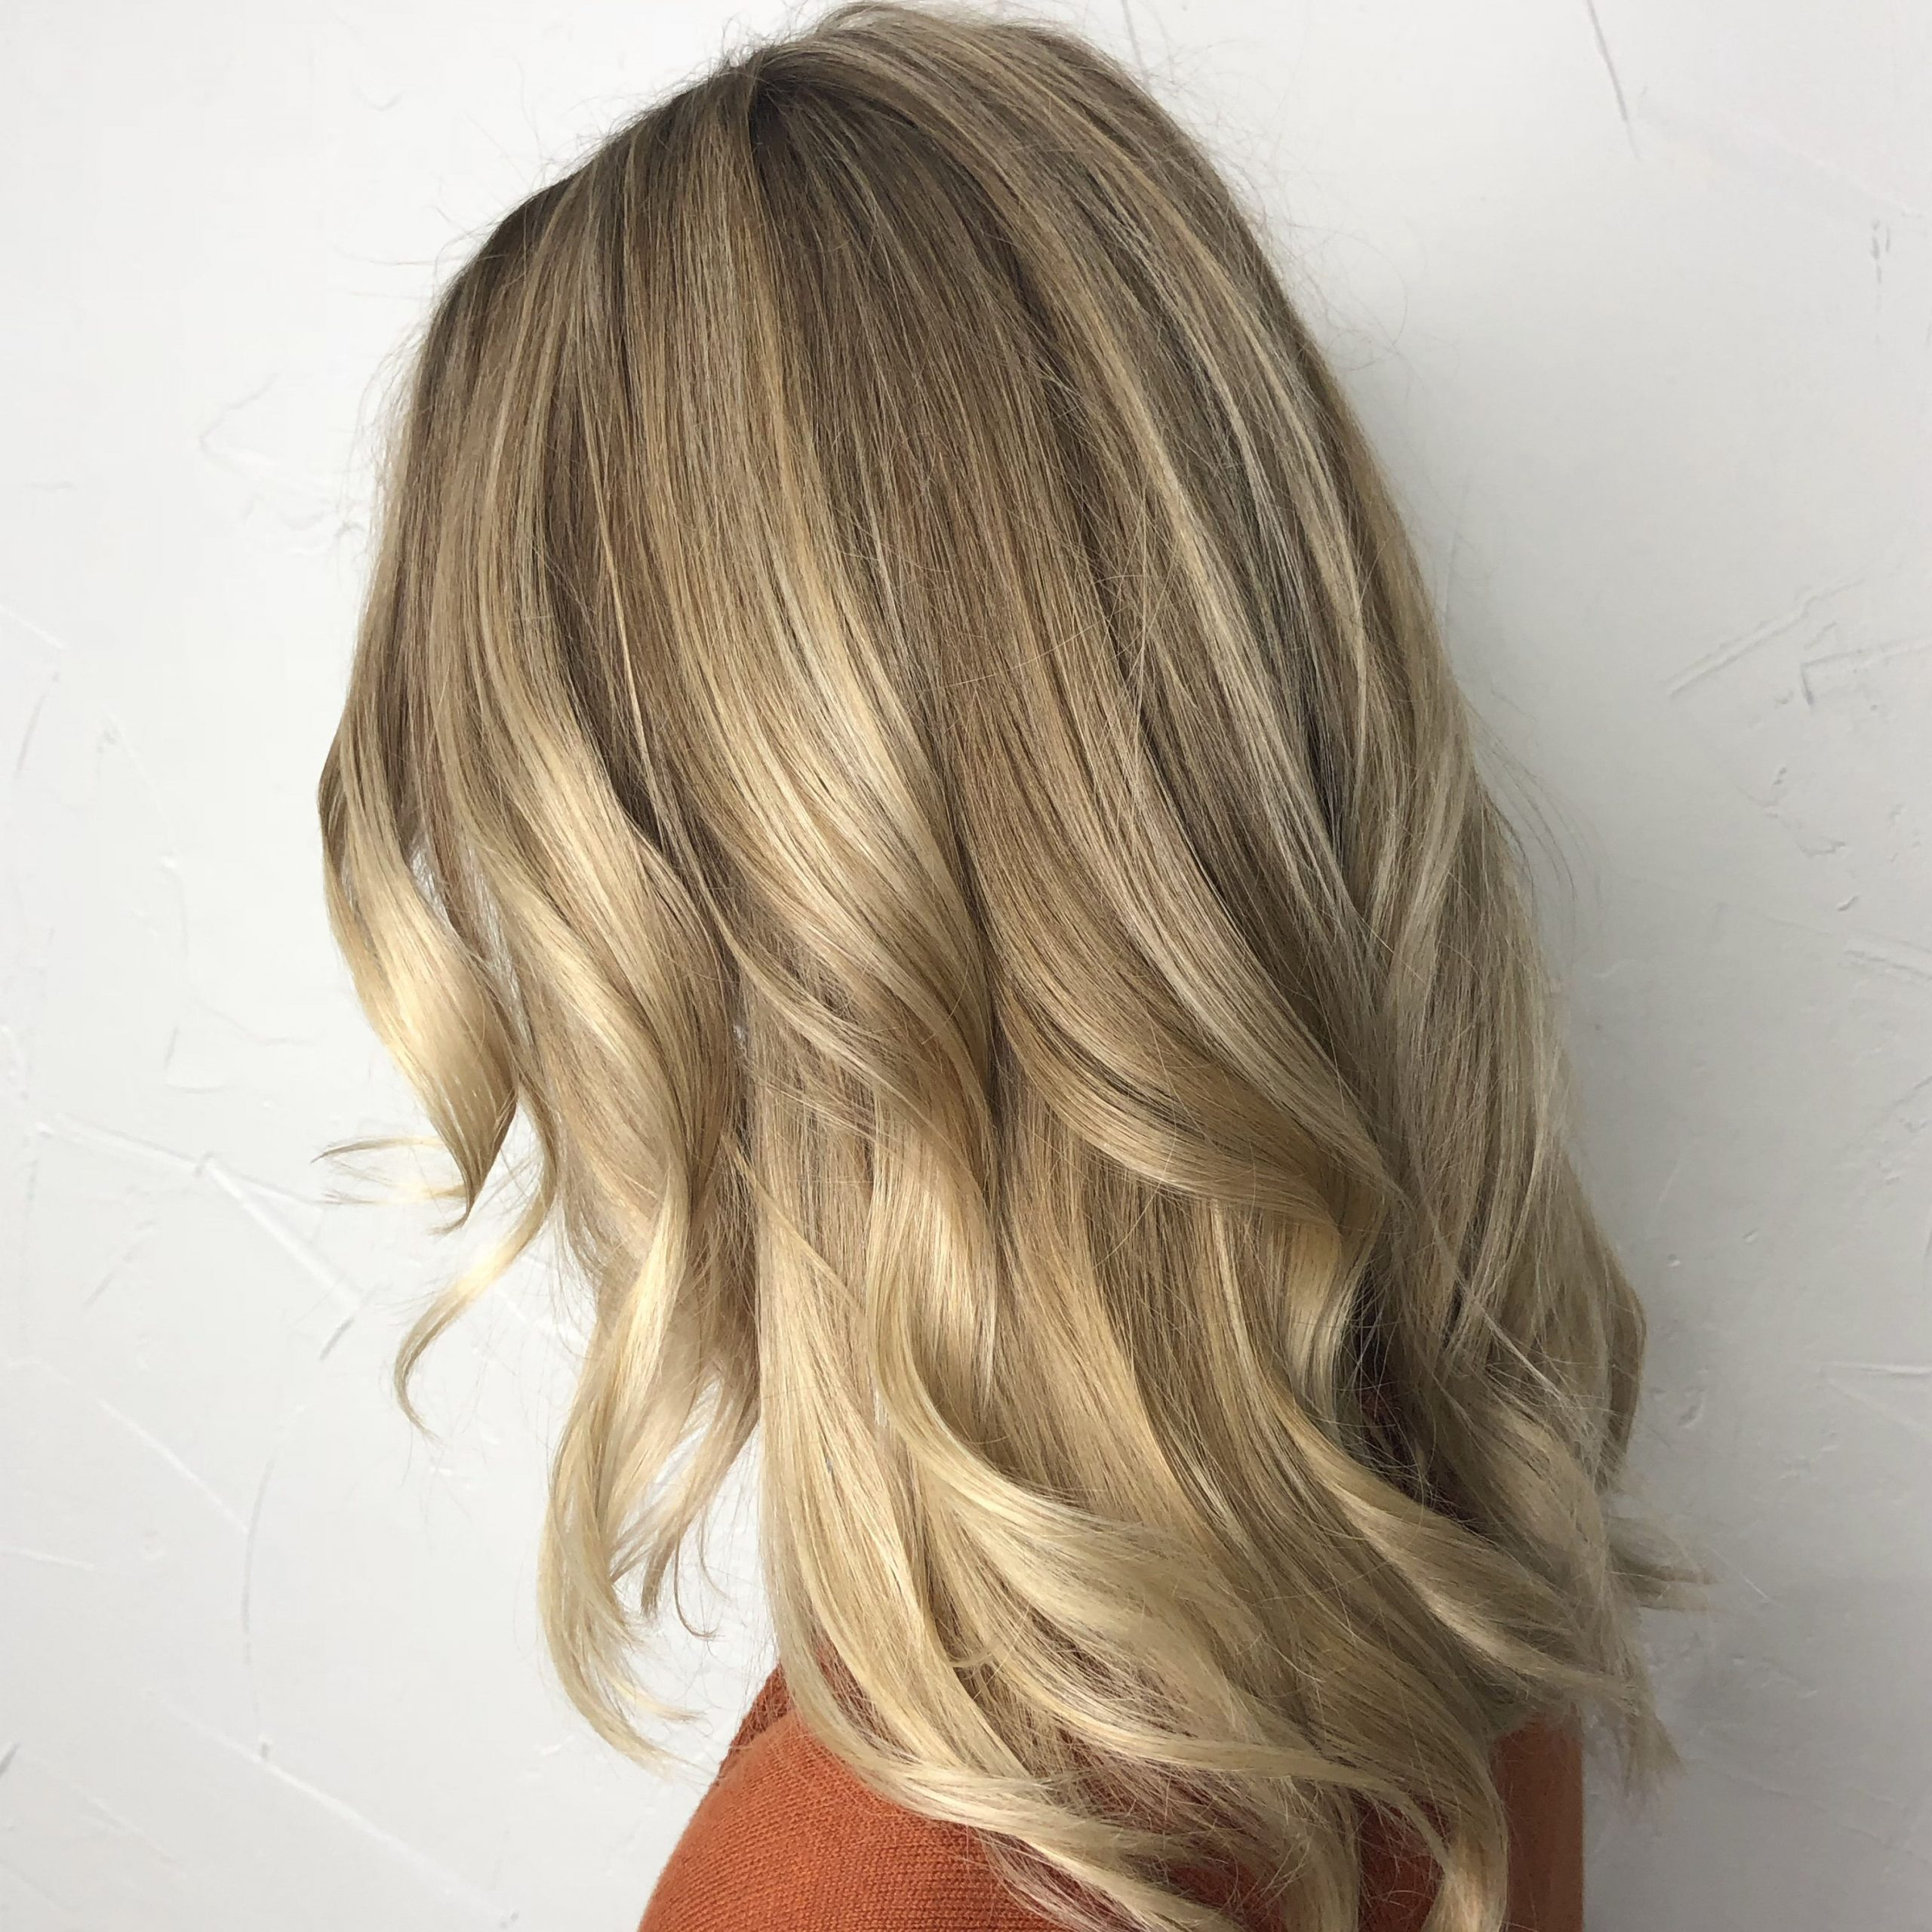 Ombré Blonde Balayage & Loose Bohemian Curls ♥️   Blonde In Beachy Waves Hairstyles With Balayage Ombre (View 5 of 20)